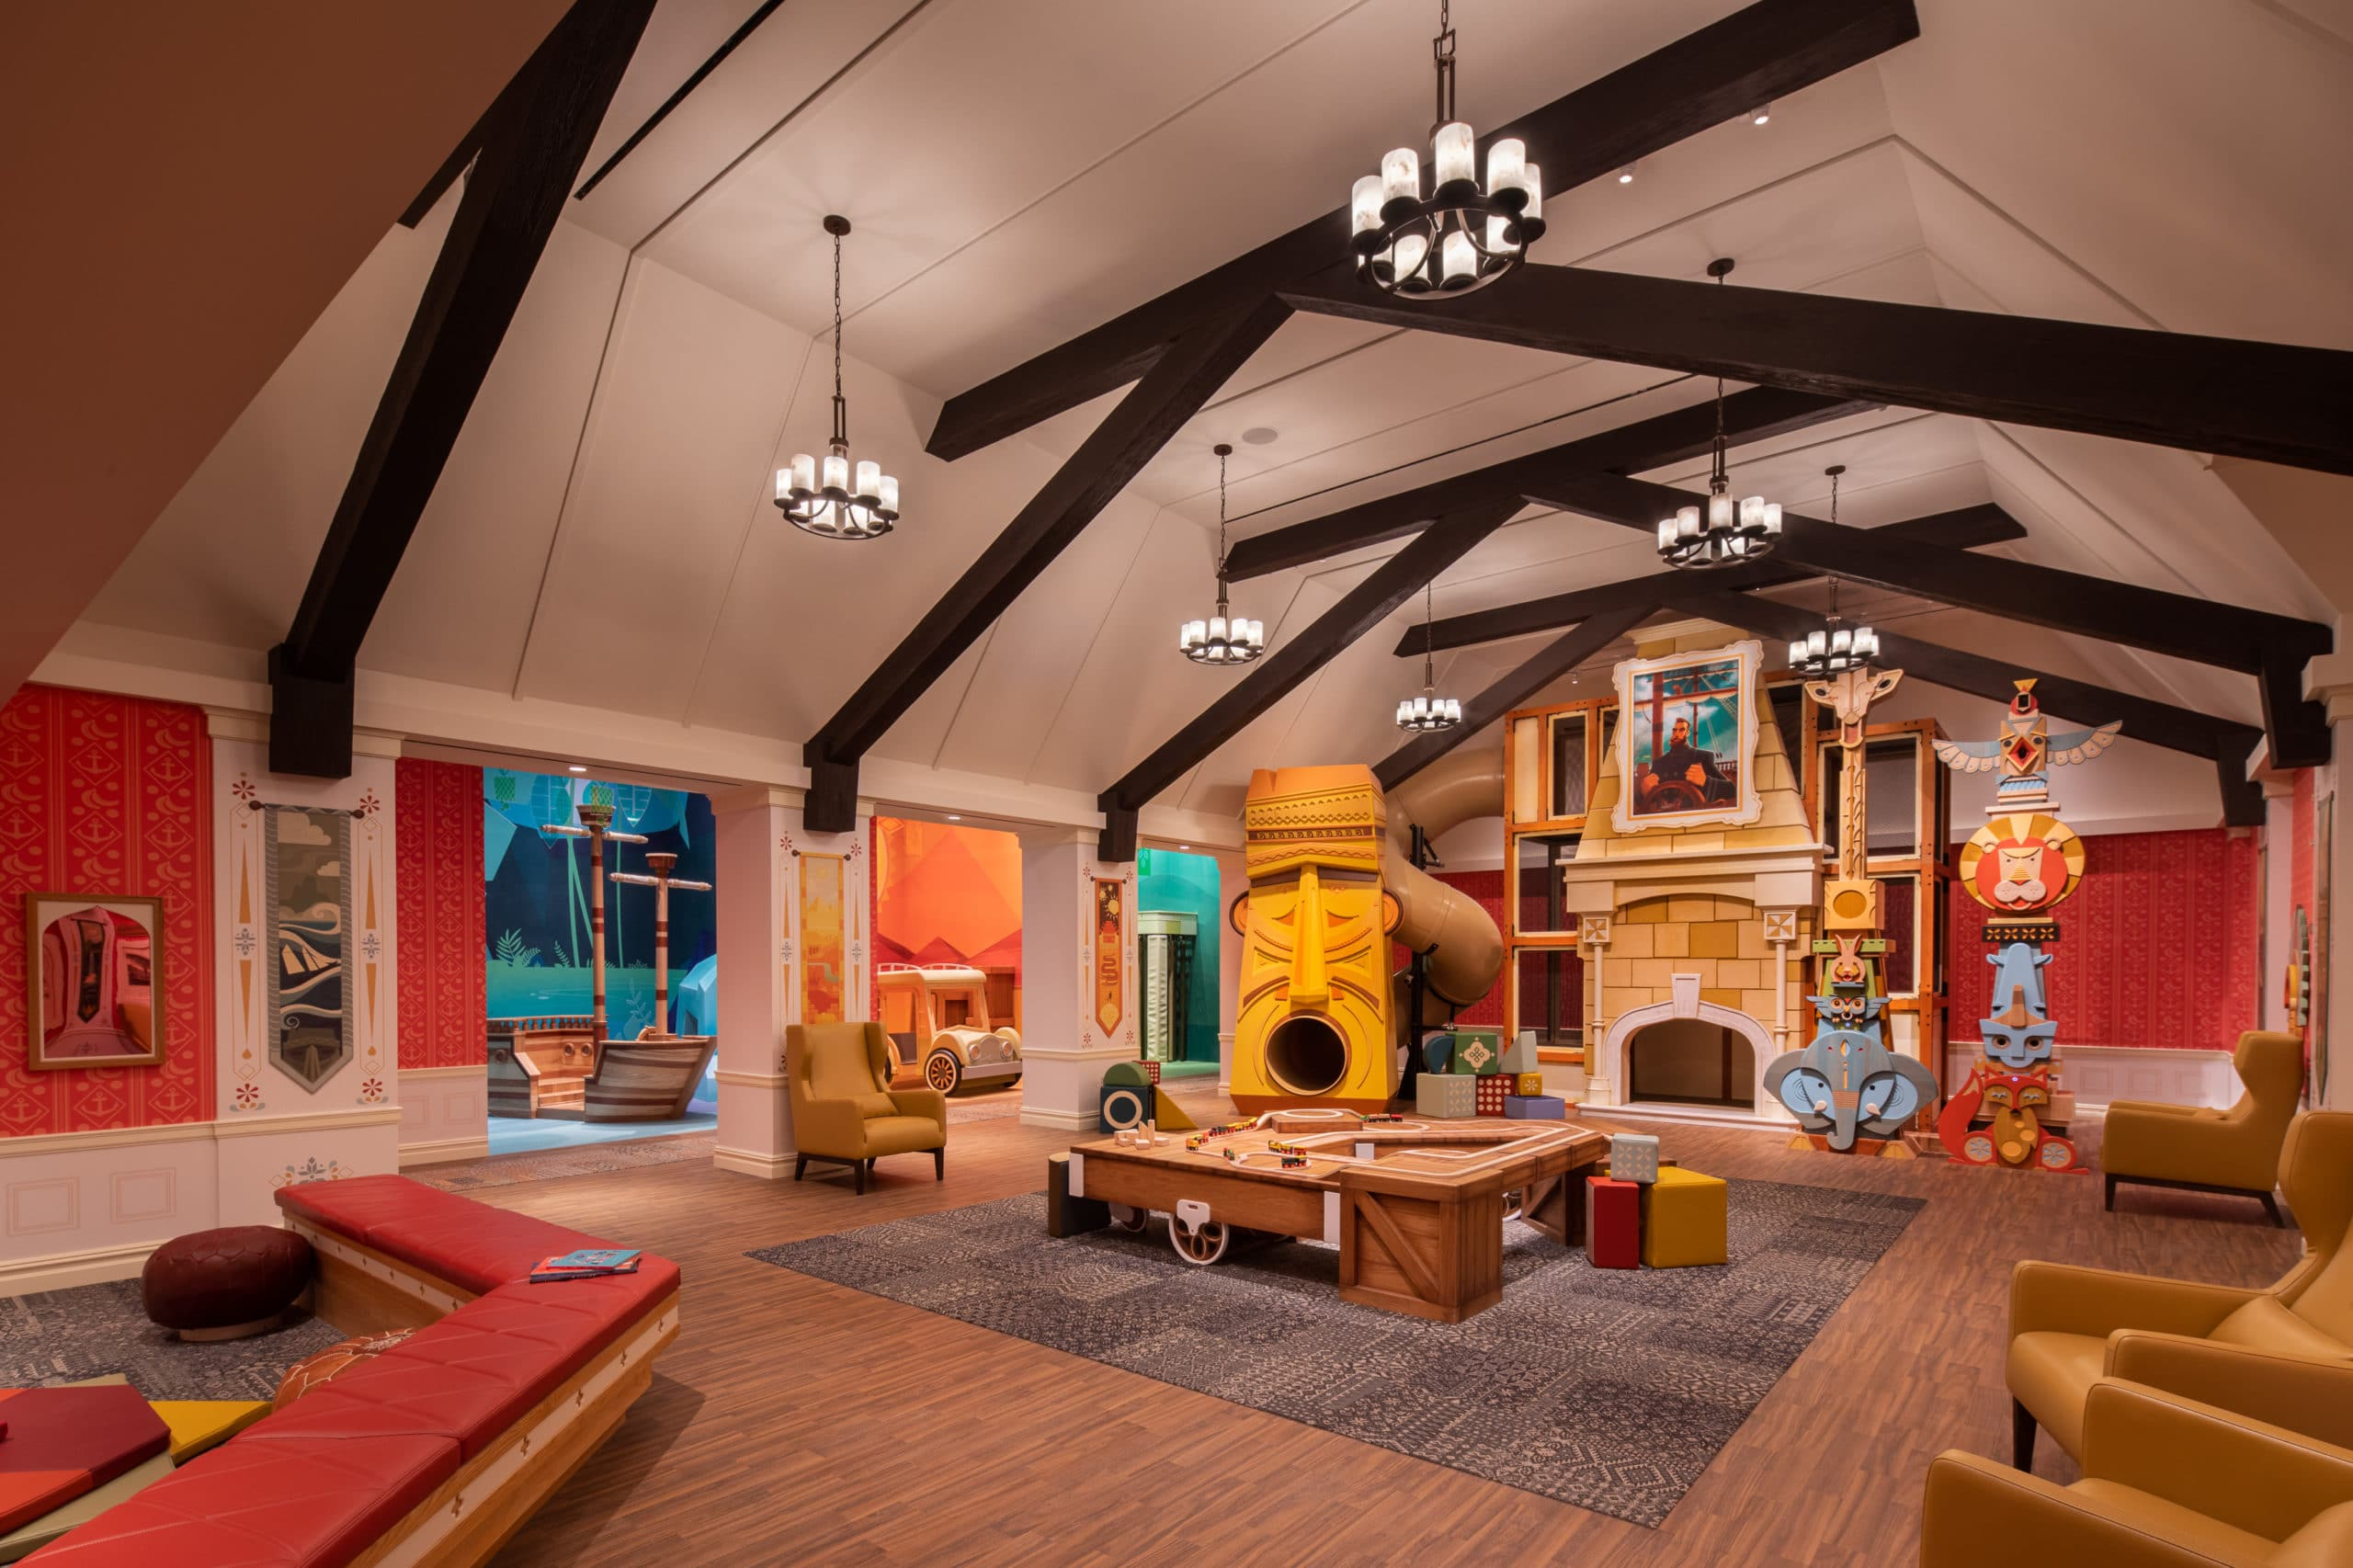 Playroom at Waterline Square luxury condos in New York. Large room with high ceilings, play areas and seating for parents.